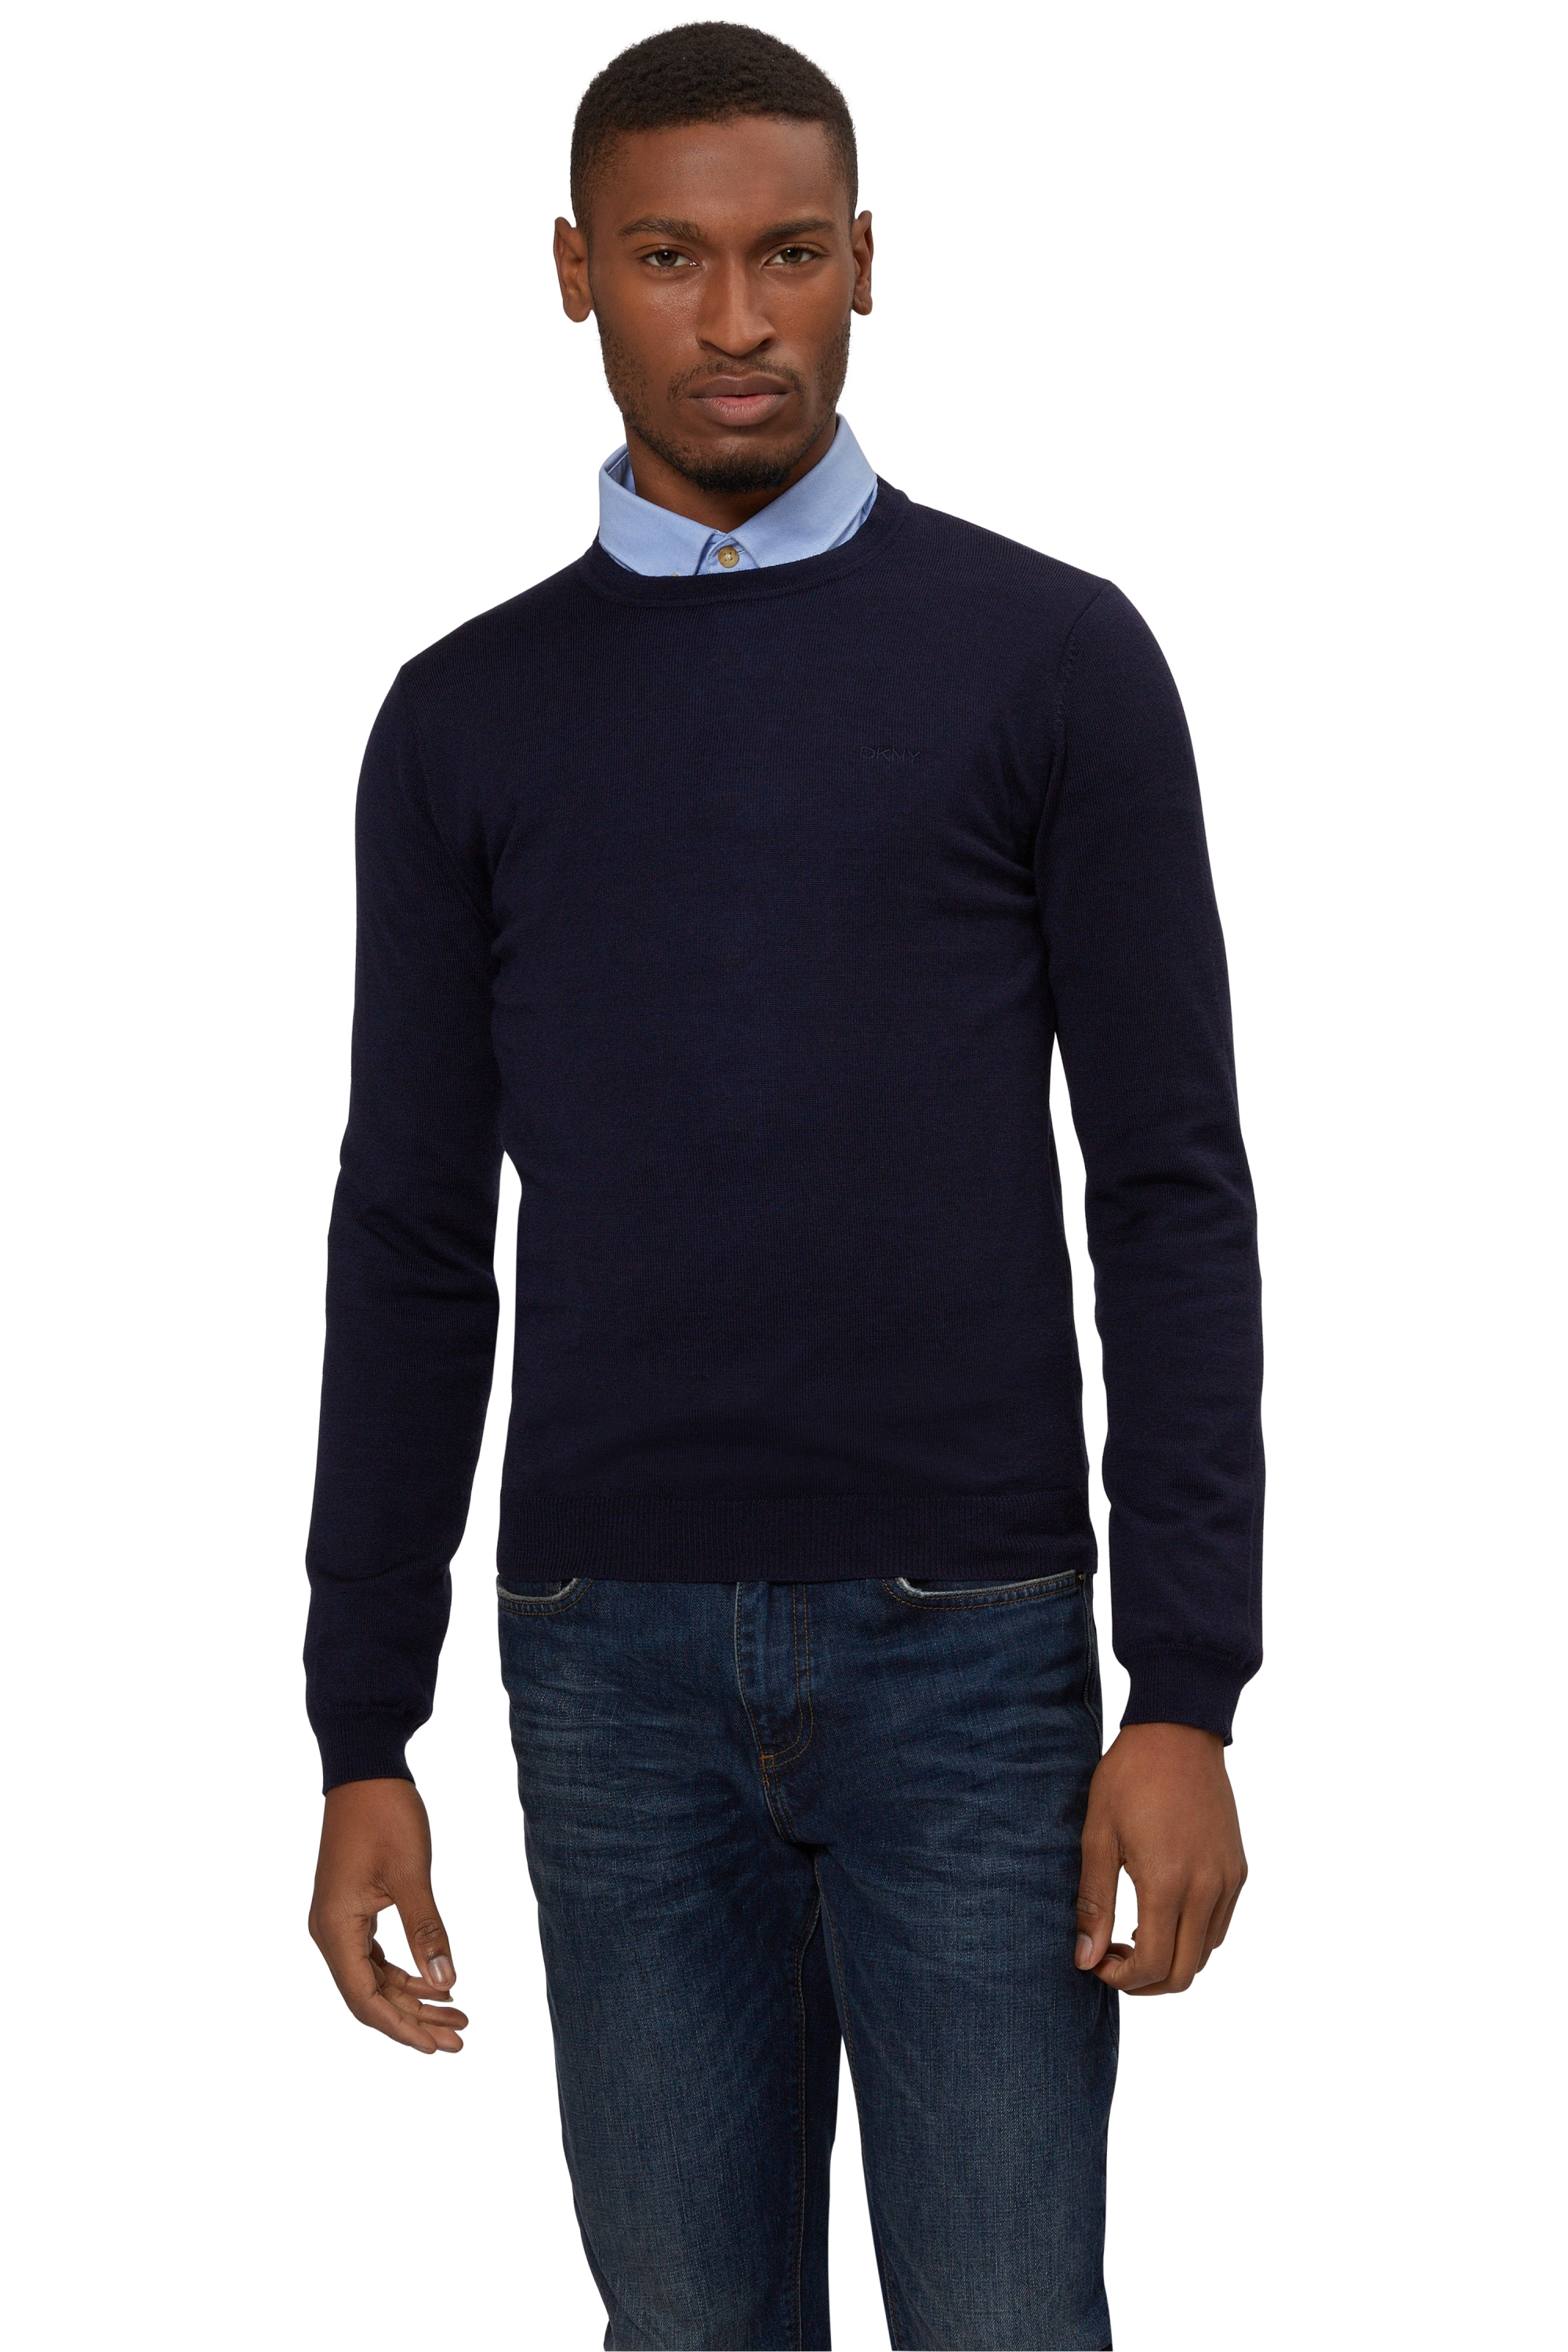 Find mens navy blue jumpers at ShopStyle. Shop the latest collection of mens navy blue jumpers from the most popular stores - all in one place. Mens Navy Wool Crew* Sweater Mens Navy Blue Jumpers + Save this search Emporio Armani Crew-Neck Sweater With Contrast Stitching Embroidered Logo $ Get a Sale Alert at Topman Topman Mens Blue.